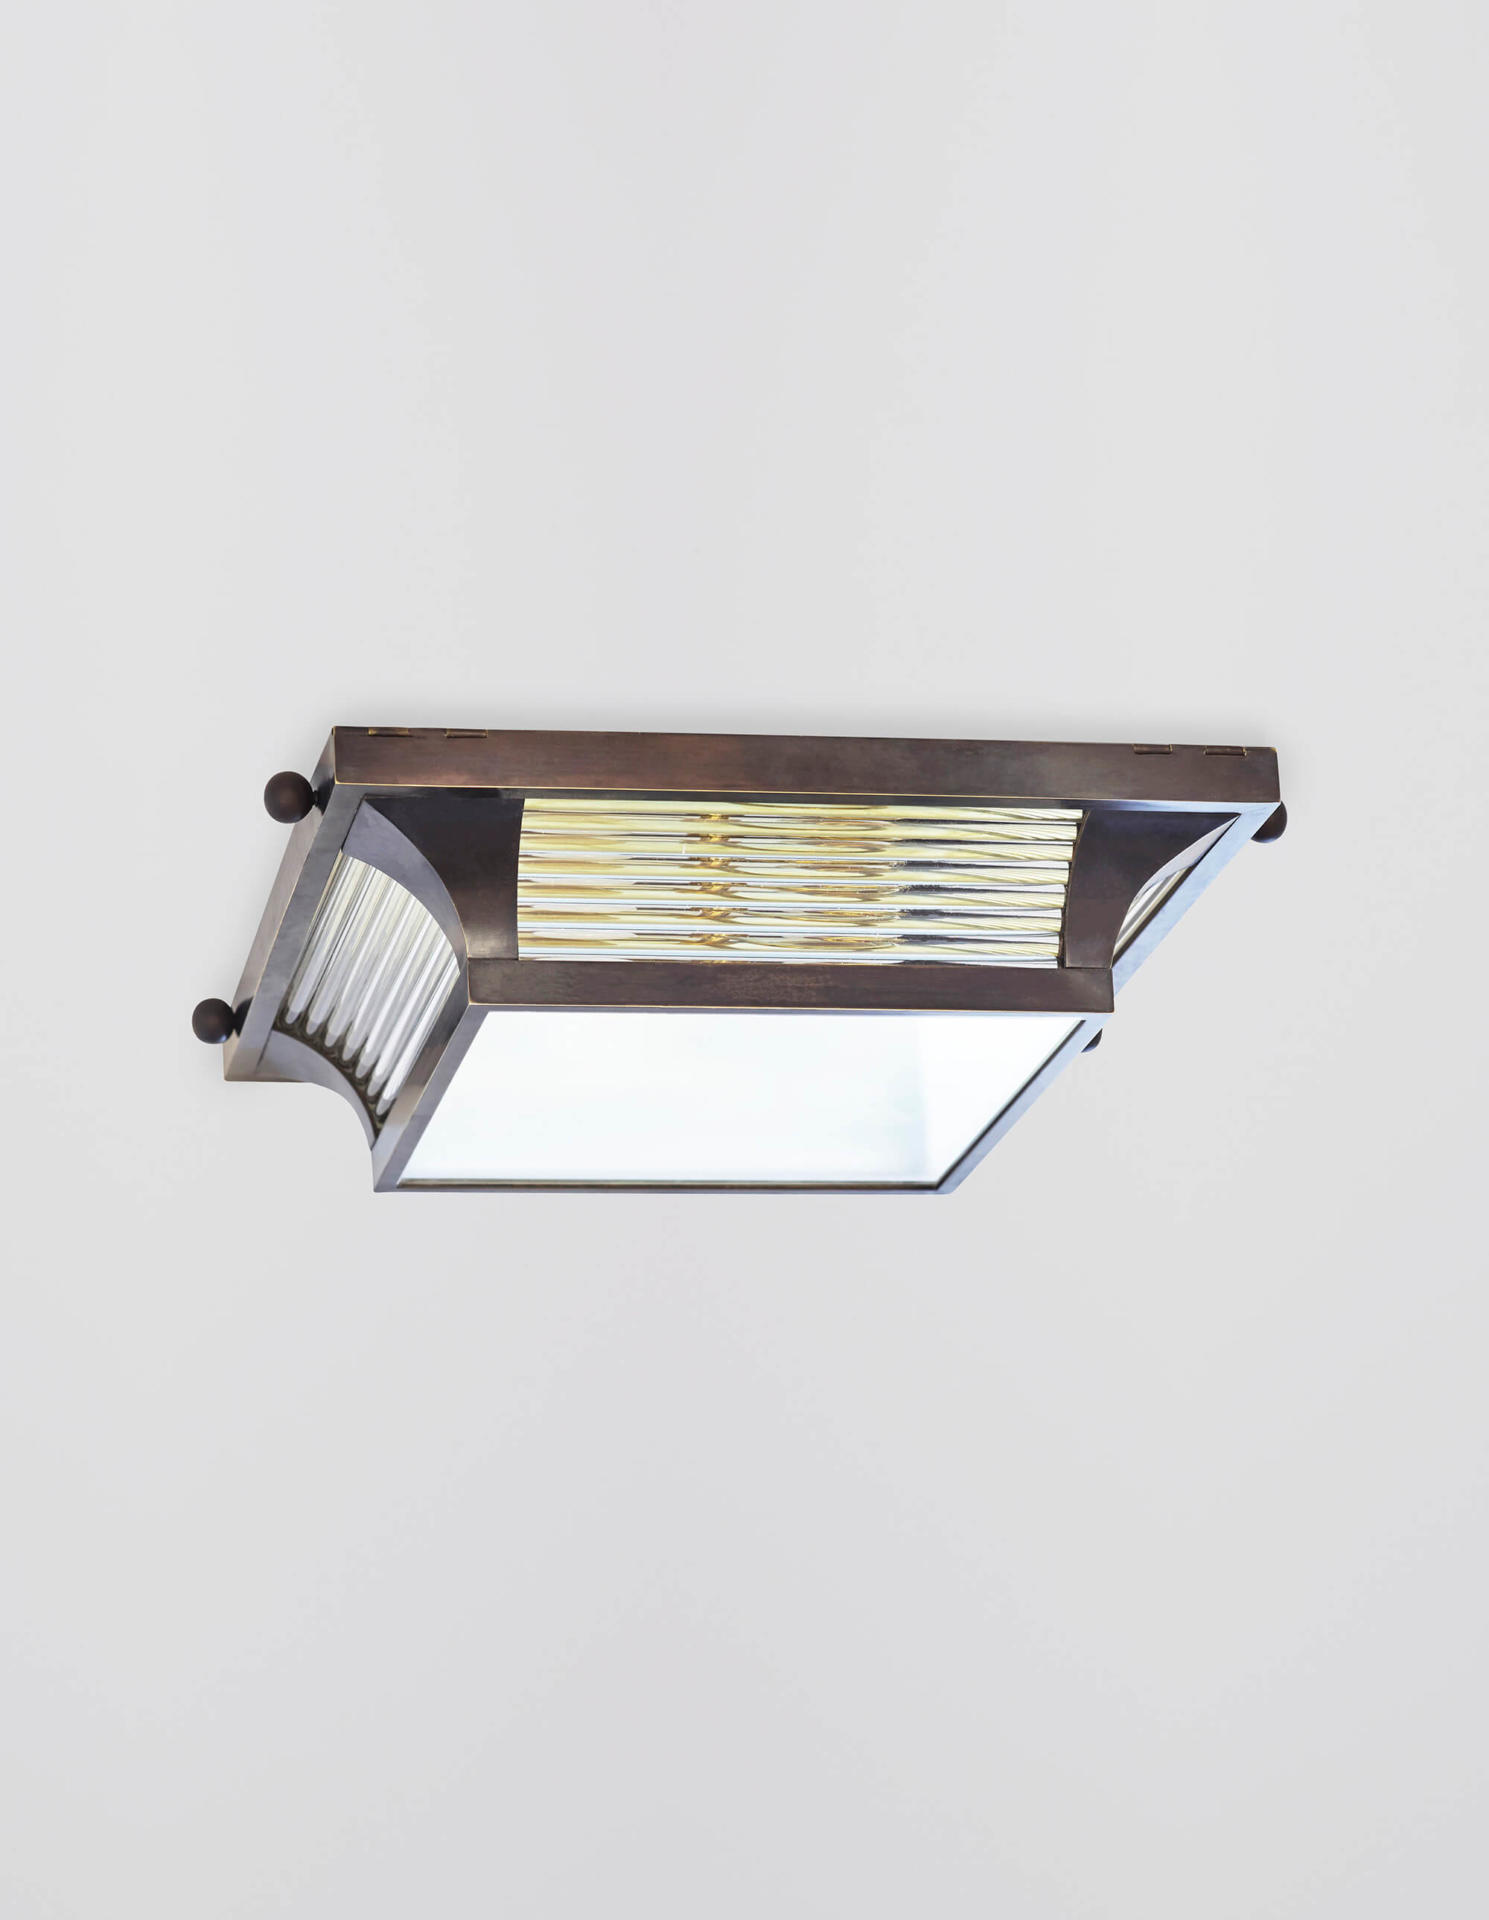 Square Odeon Flush Mounted - a flush mount Art Deco light by Collier Webb